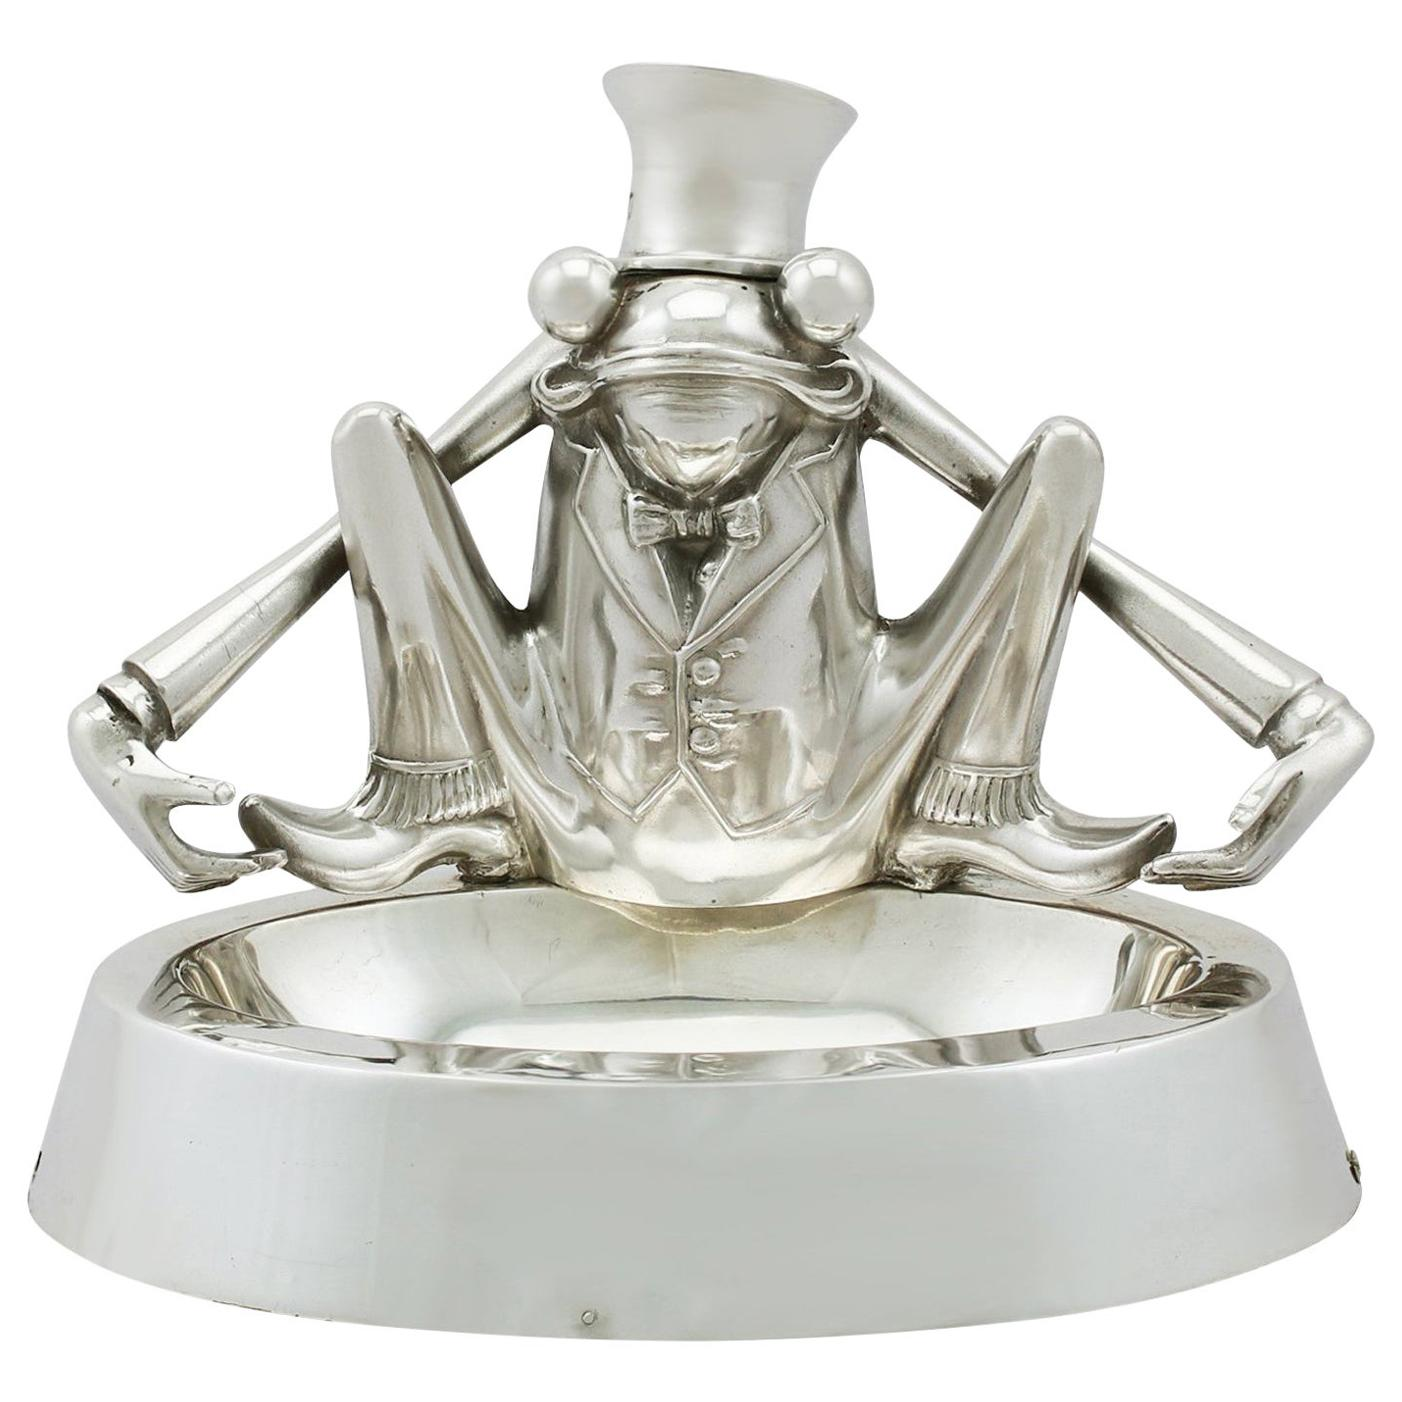 Sterling Silver 'Frog' Inkwell, Antique Edwardian, 1904